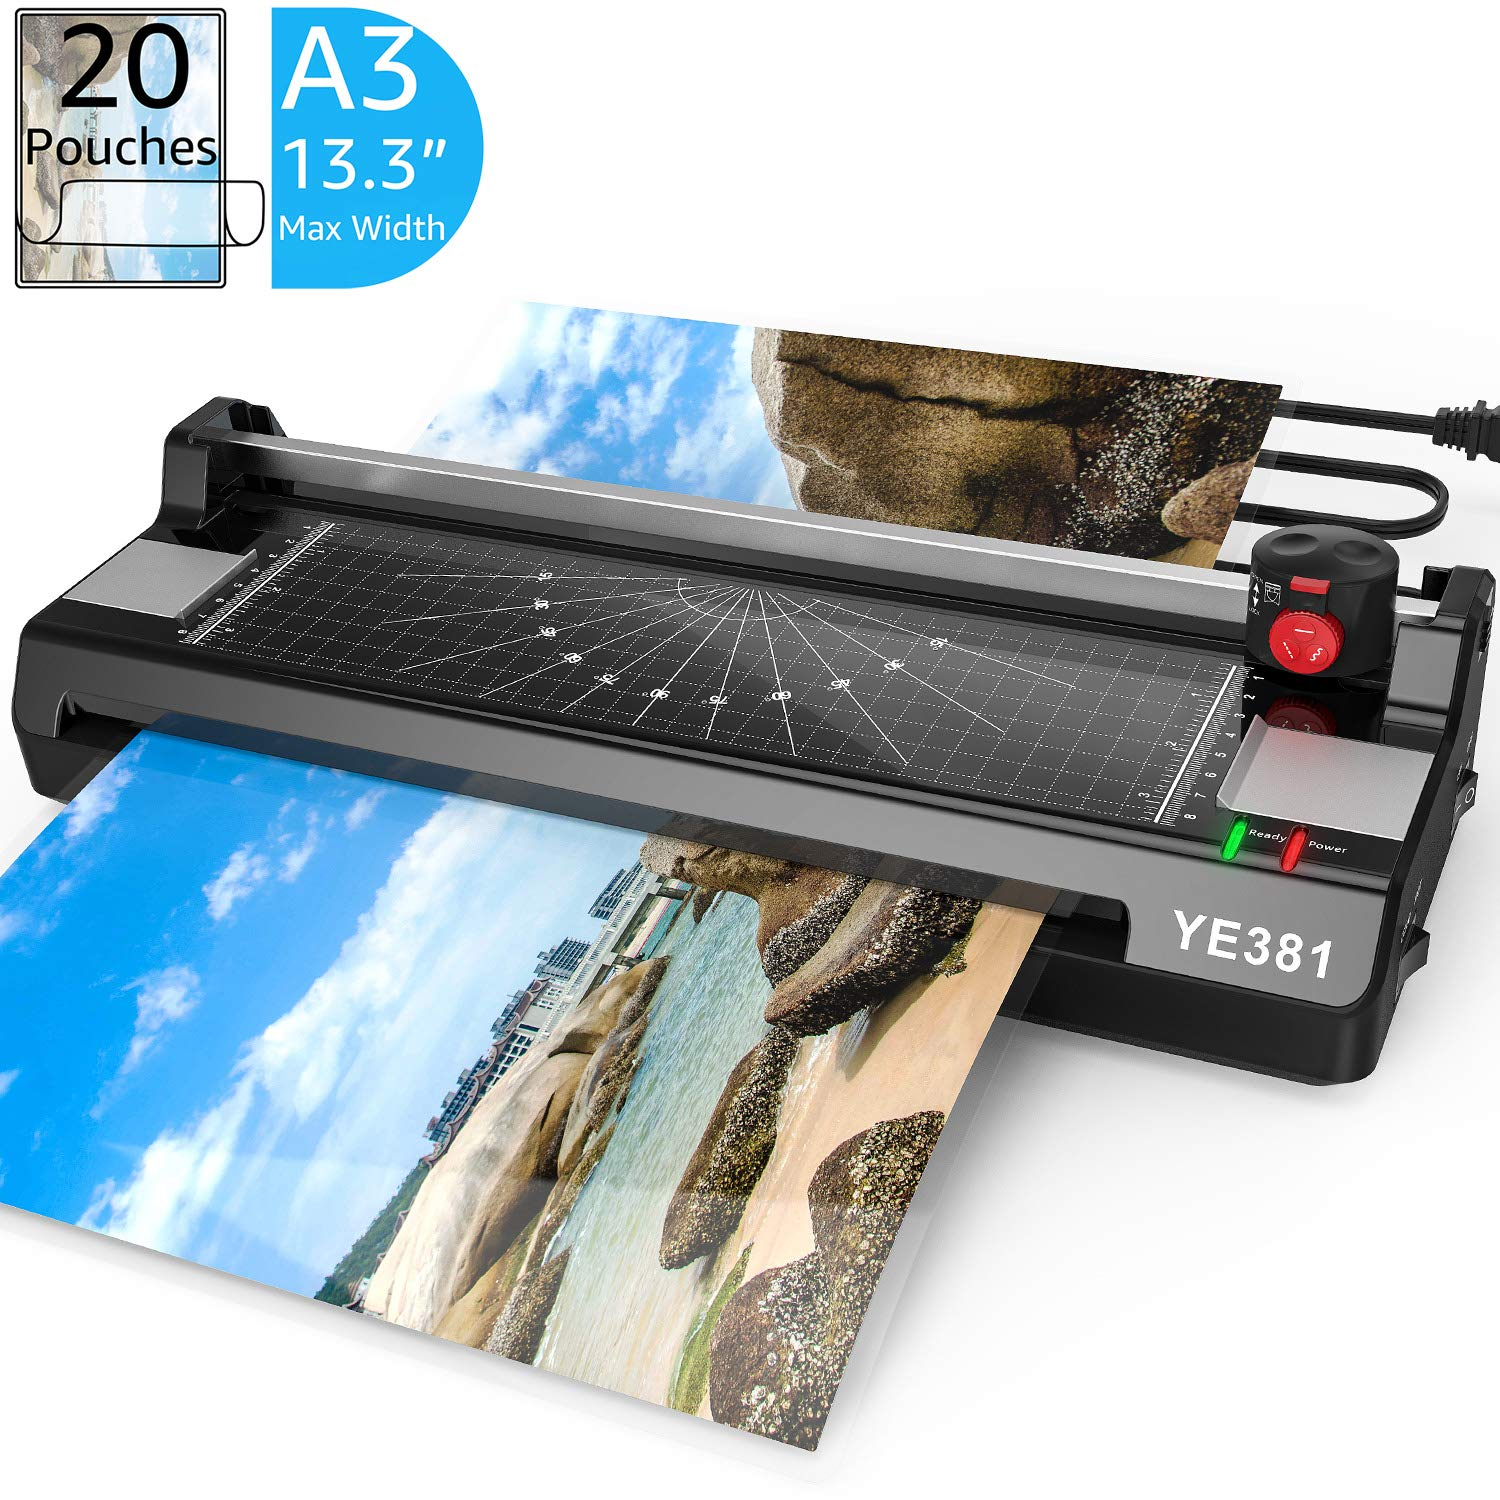 Top 10 Best Laminating Machine For Home Reviews in 2021 1